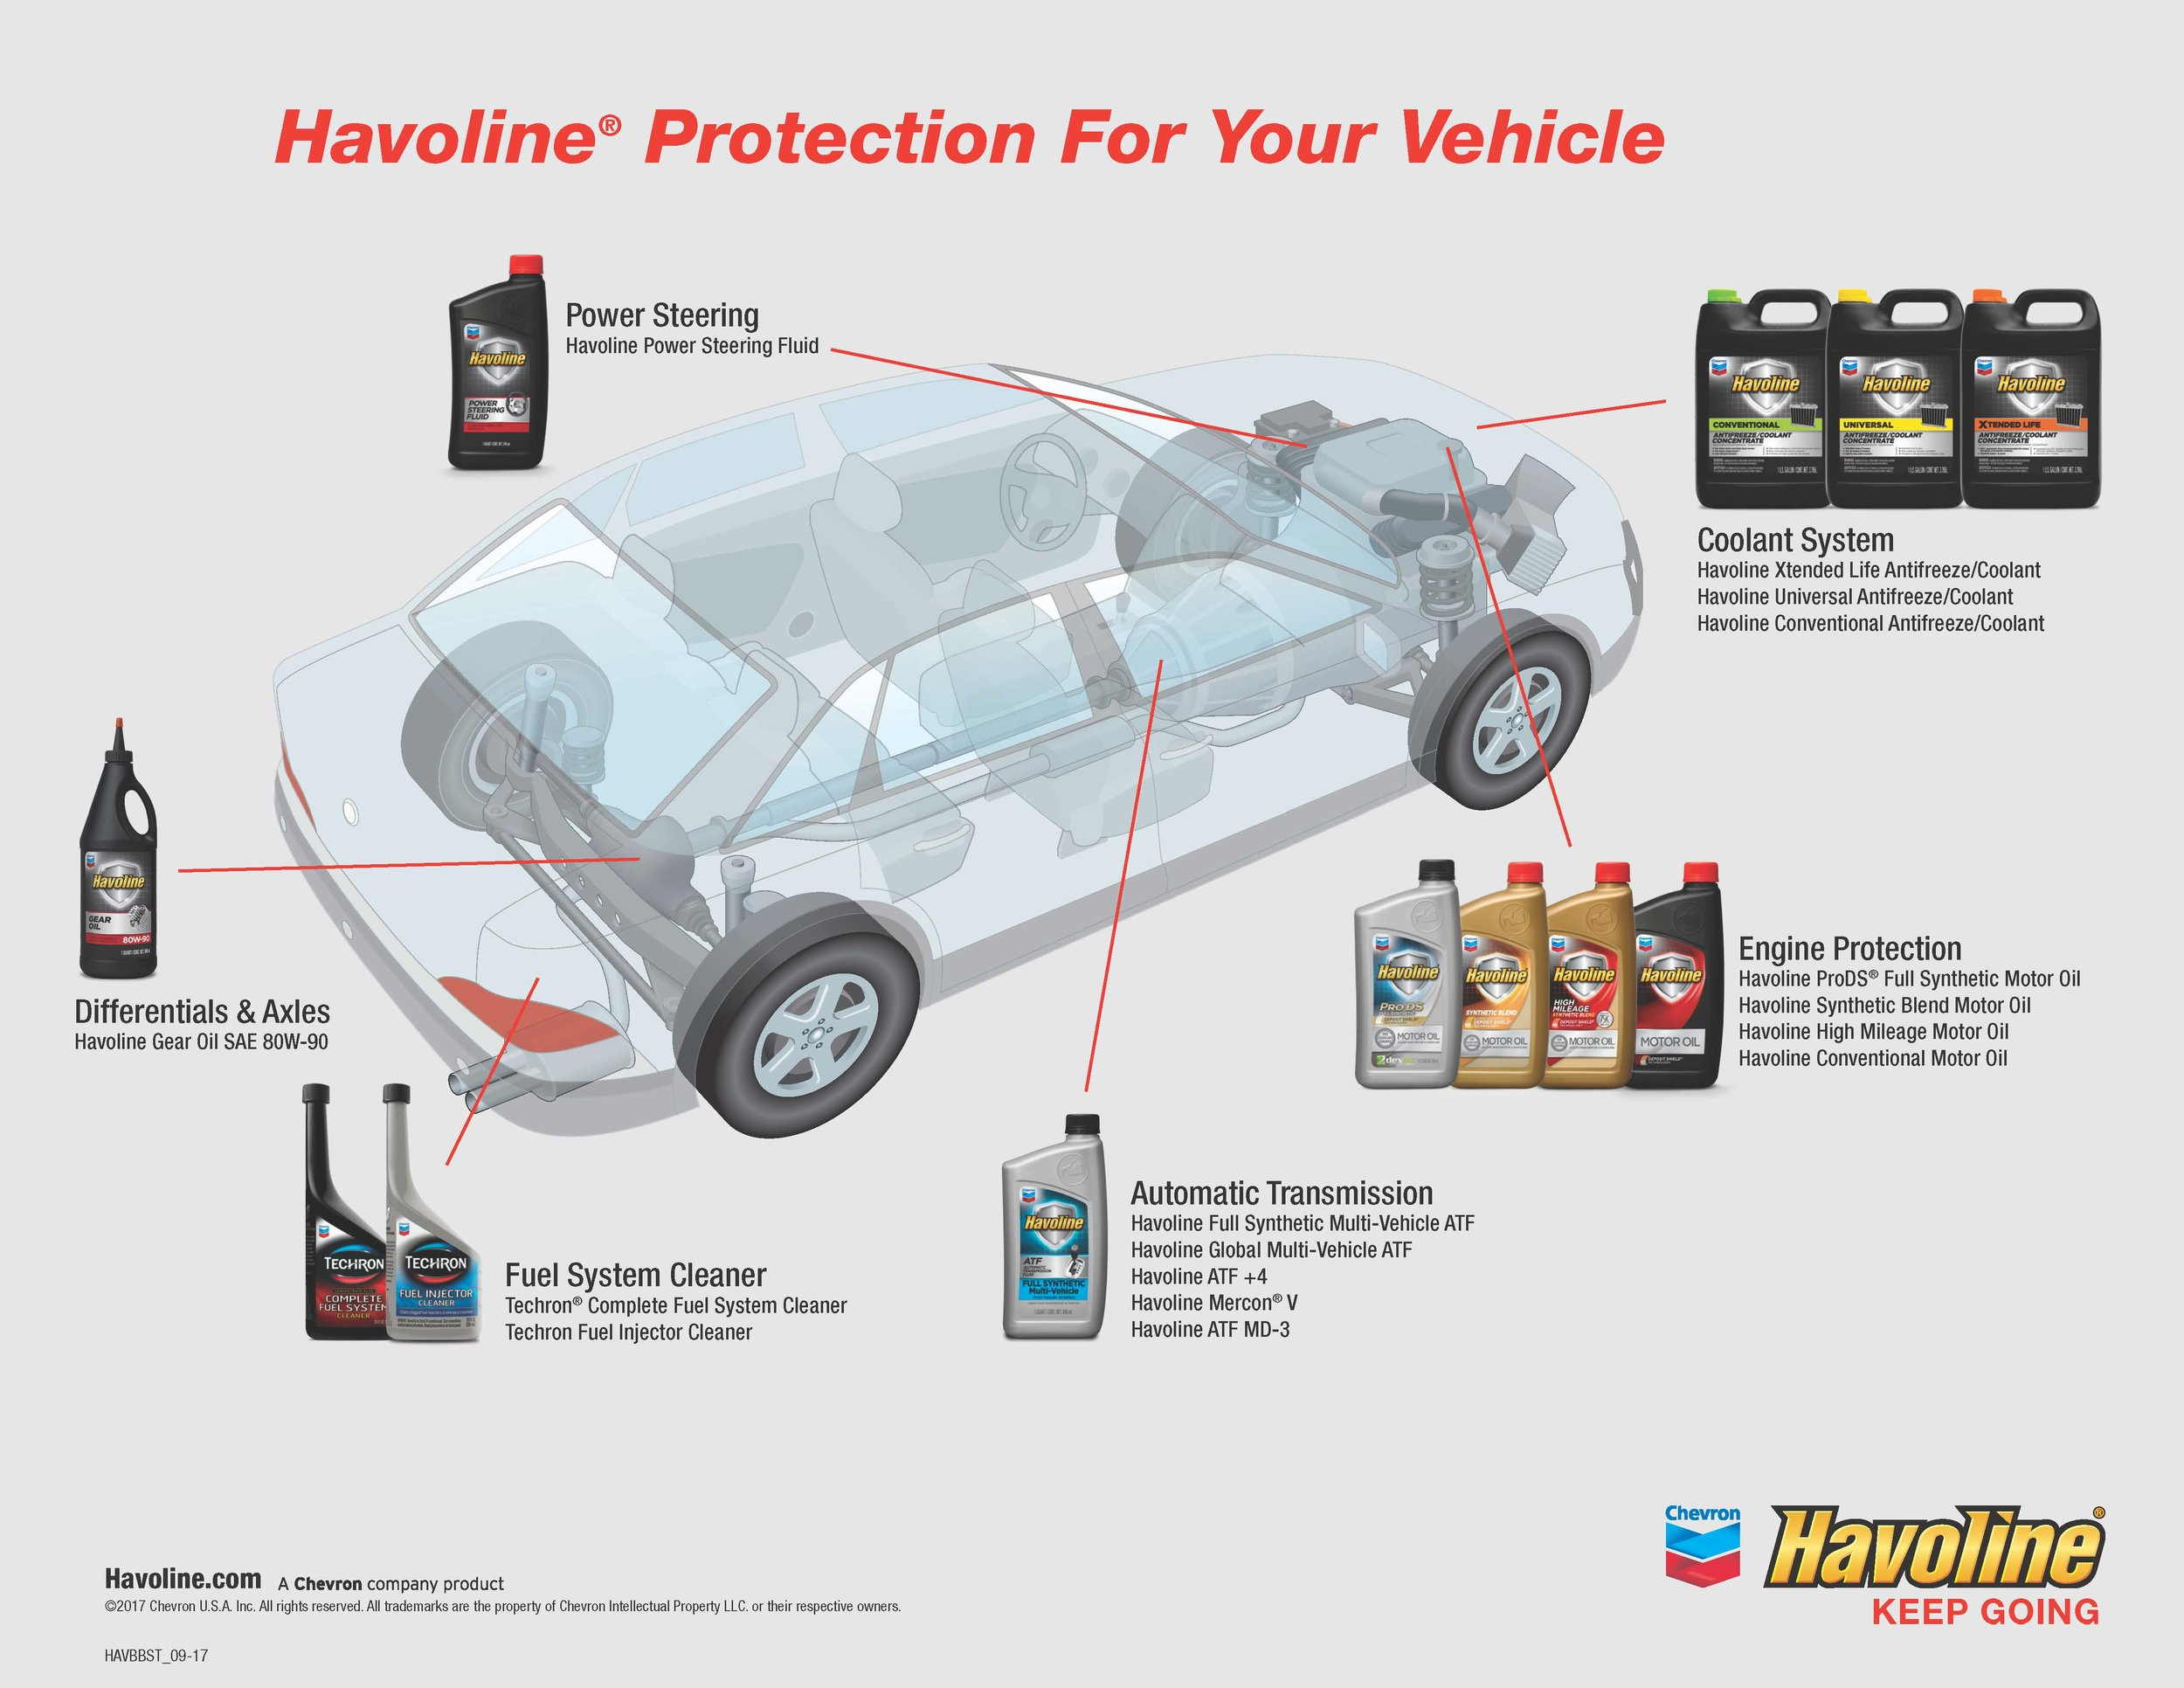 Havoline Bumper to Bumper for Gasoline Vehicles - Original File.jpg